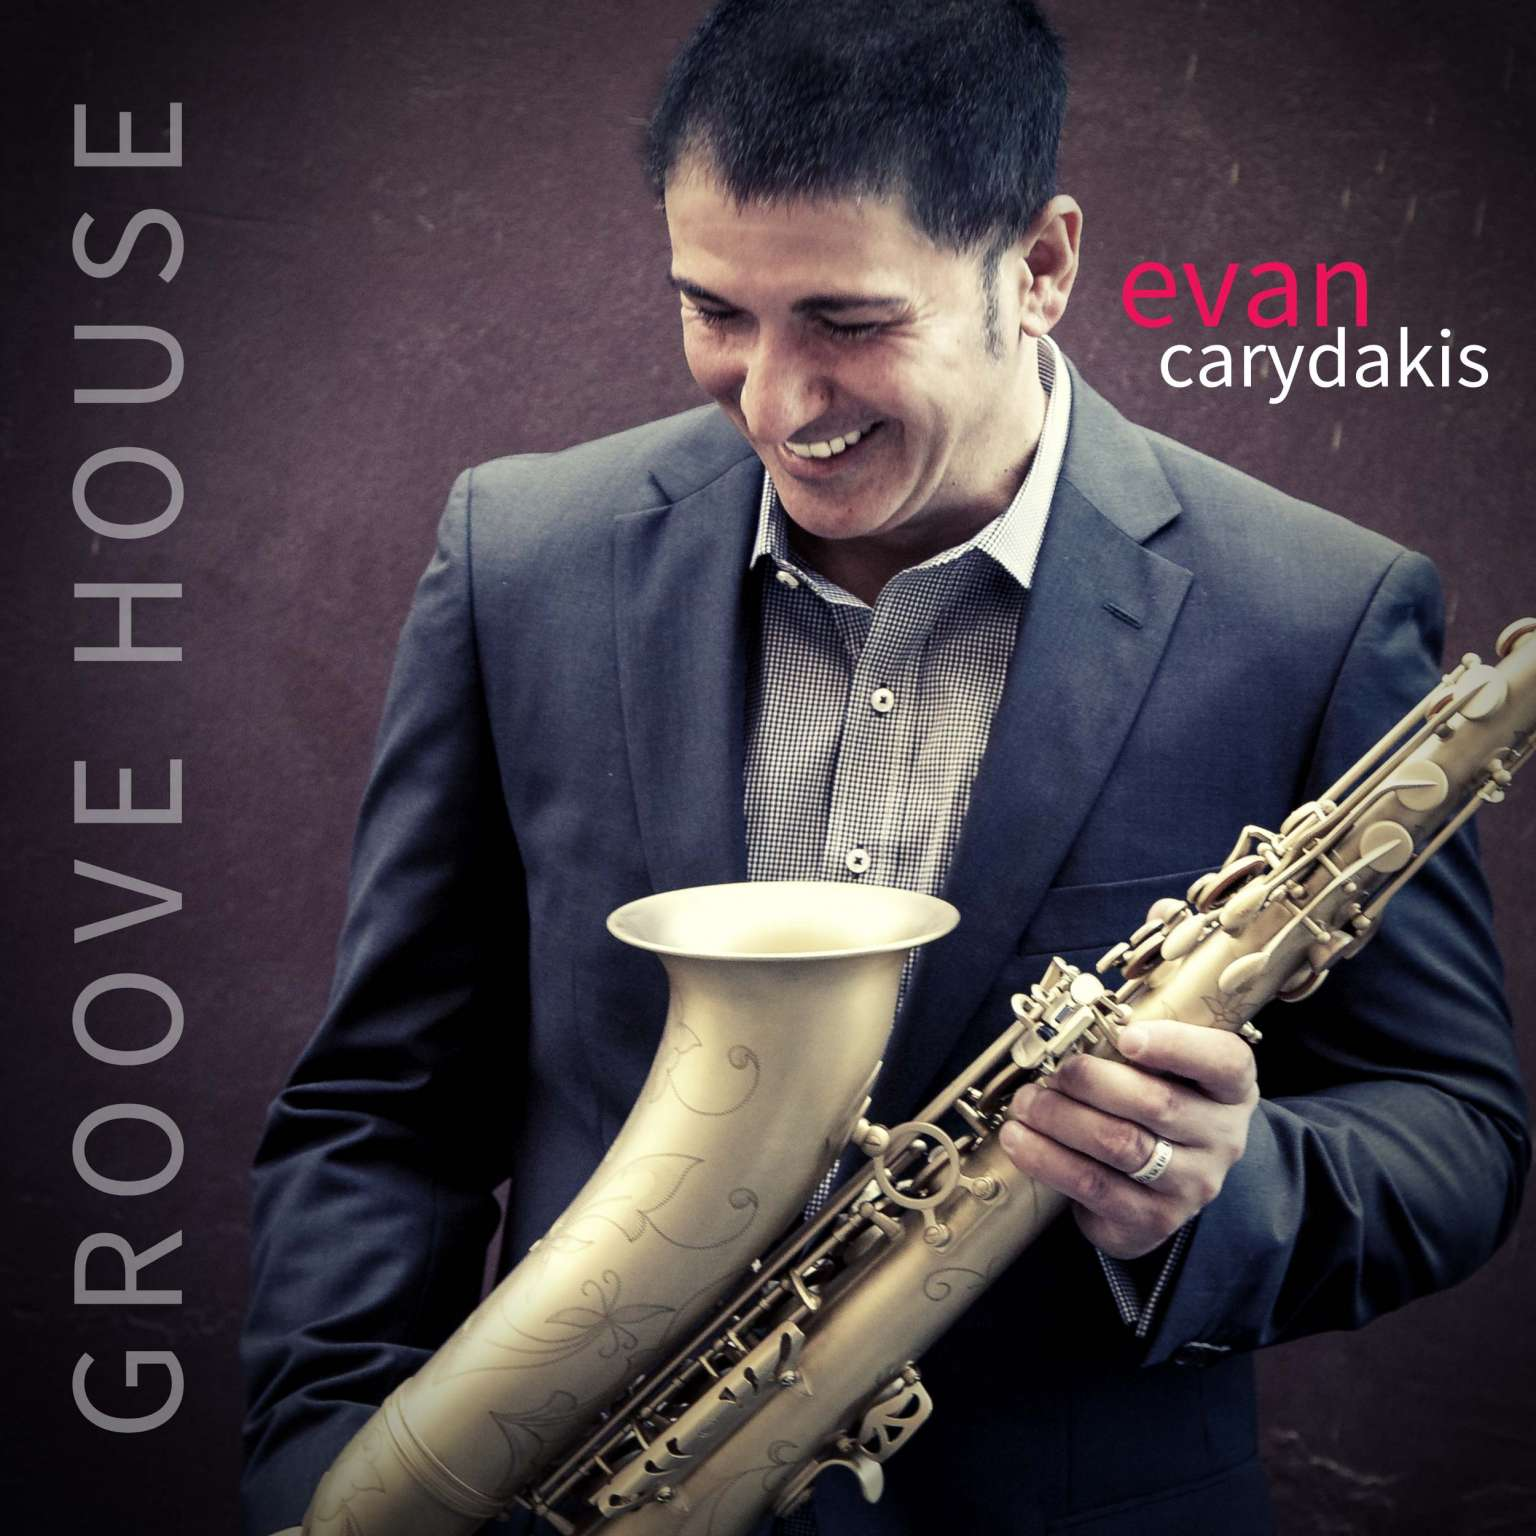 groove-house-album-cover-web-1536x1536